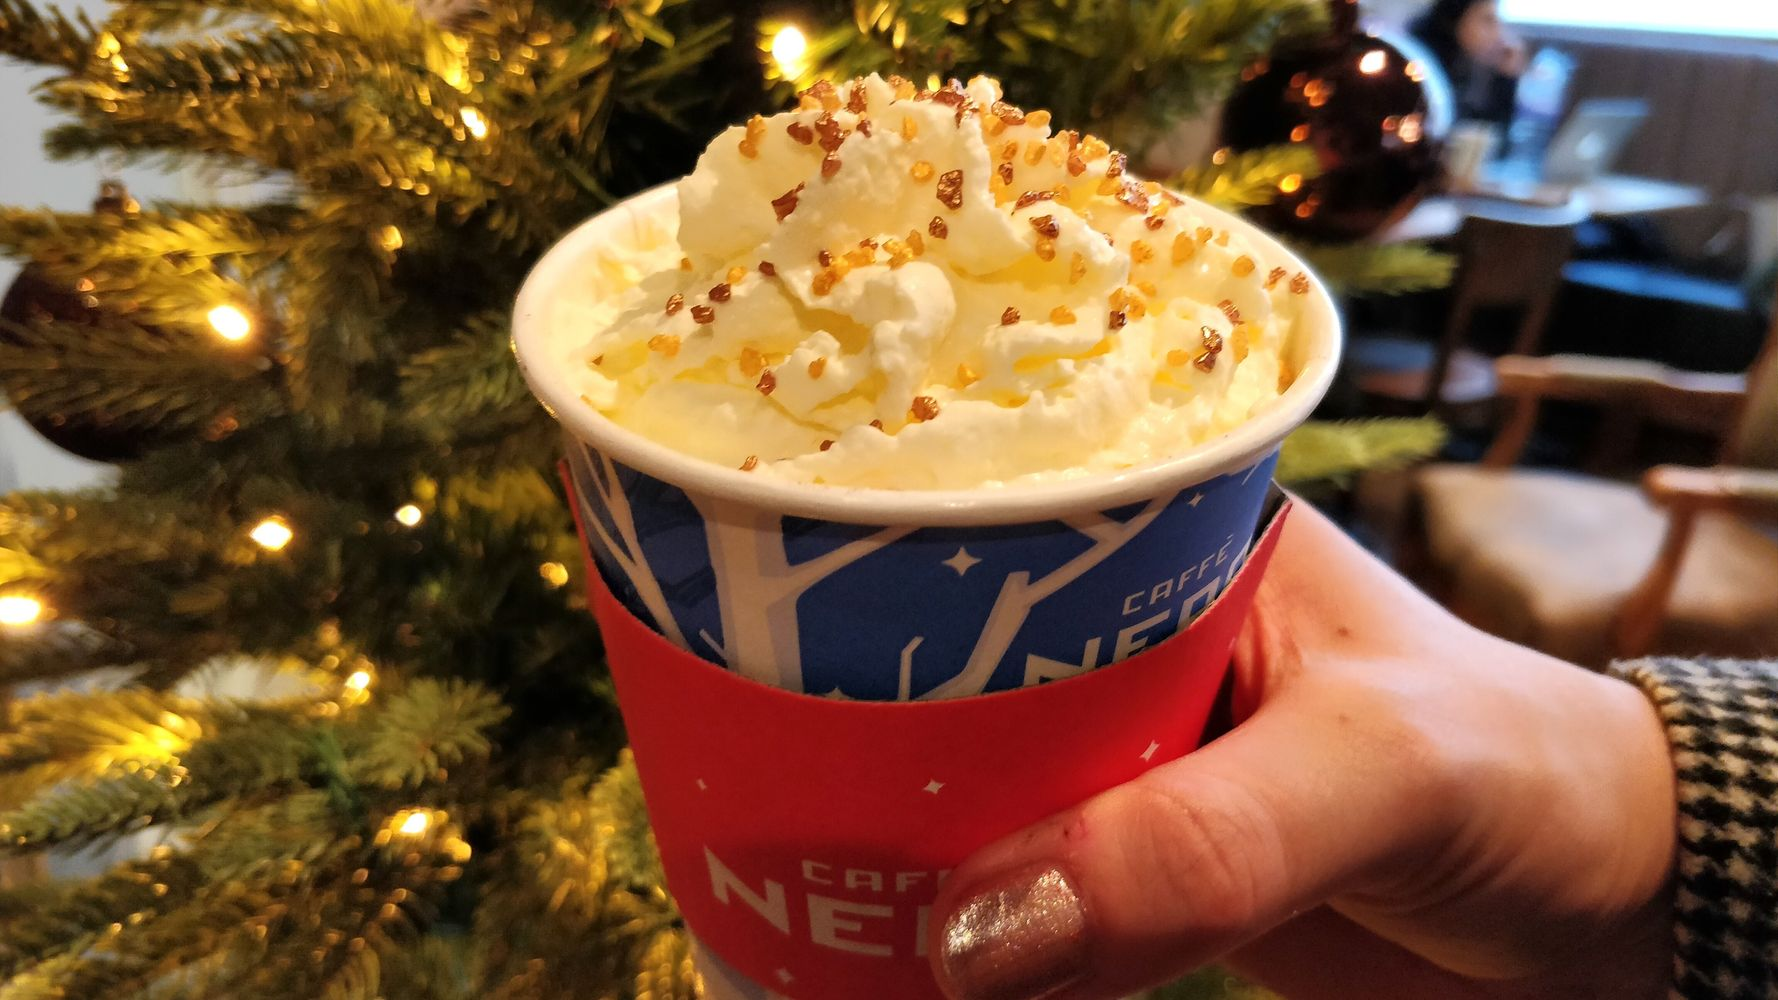 The Best And Worst Christmas Hot Drinks Ranked